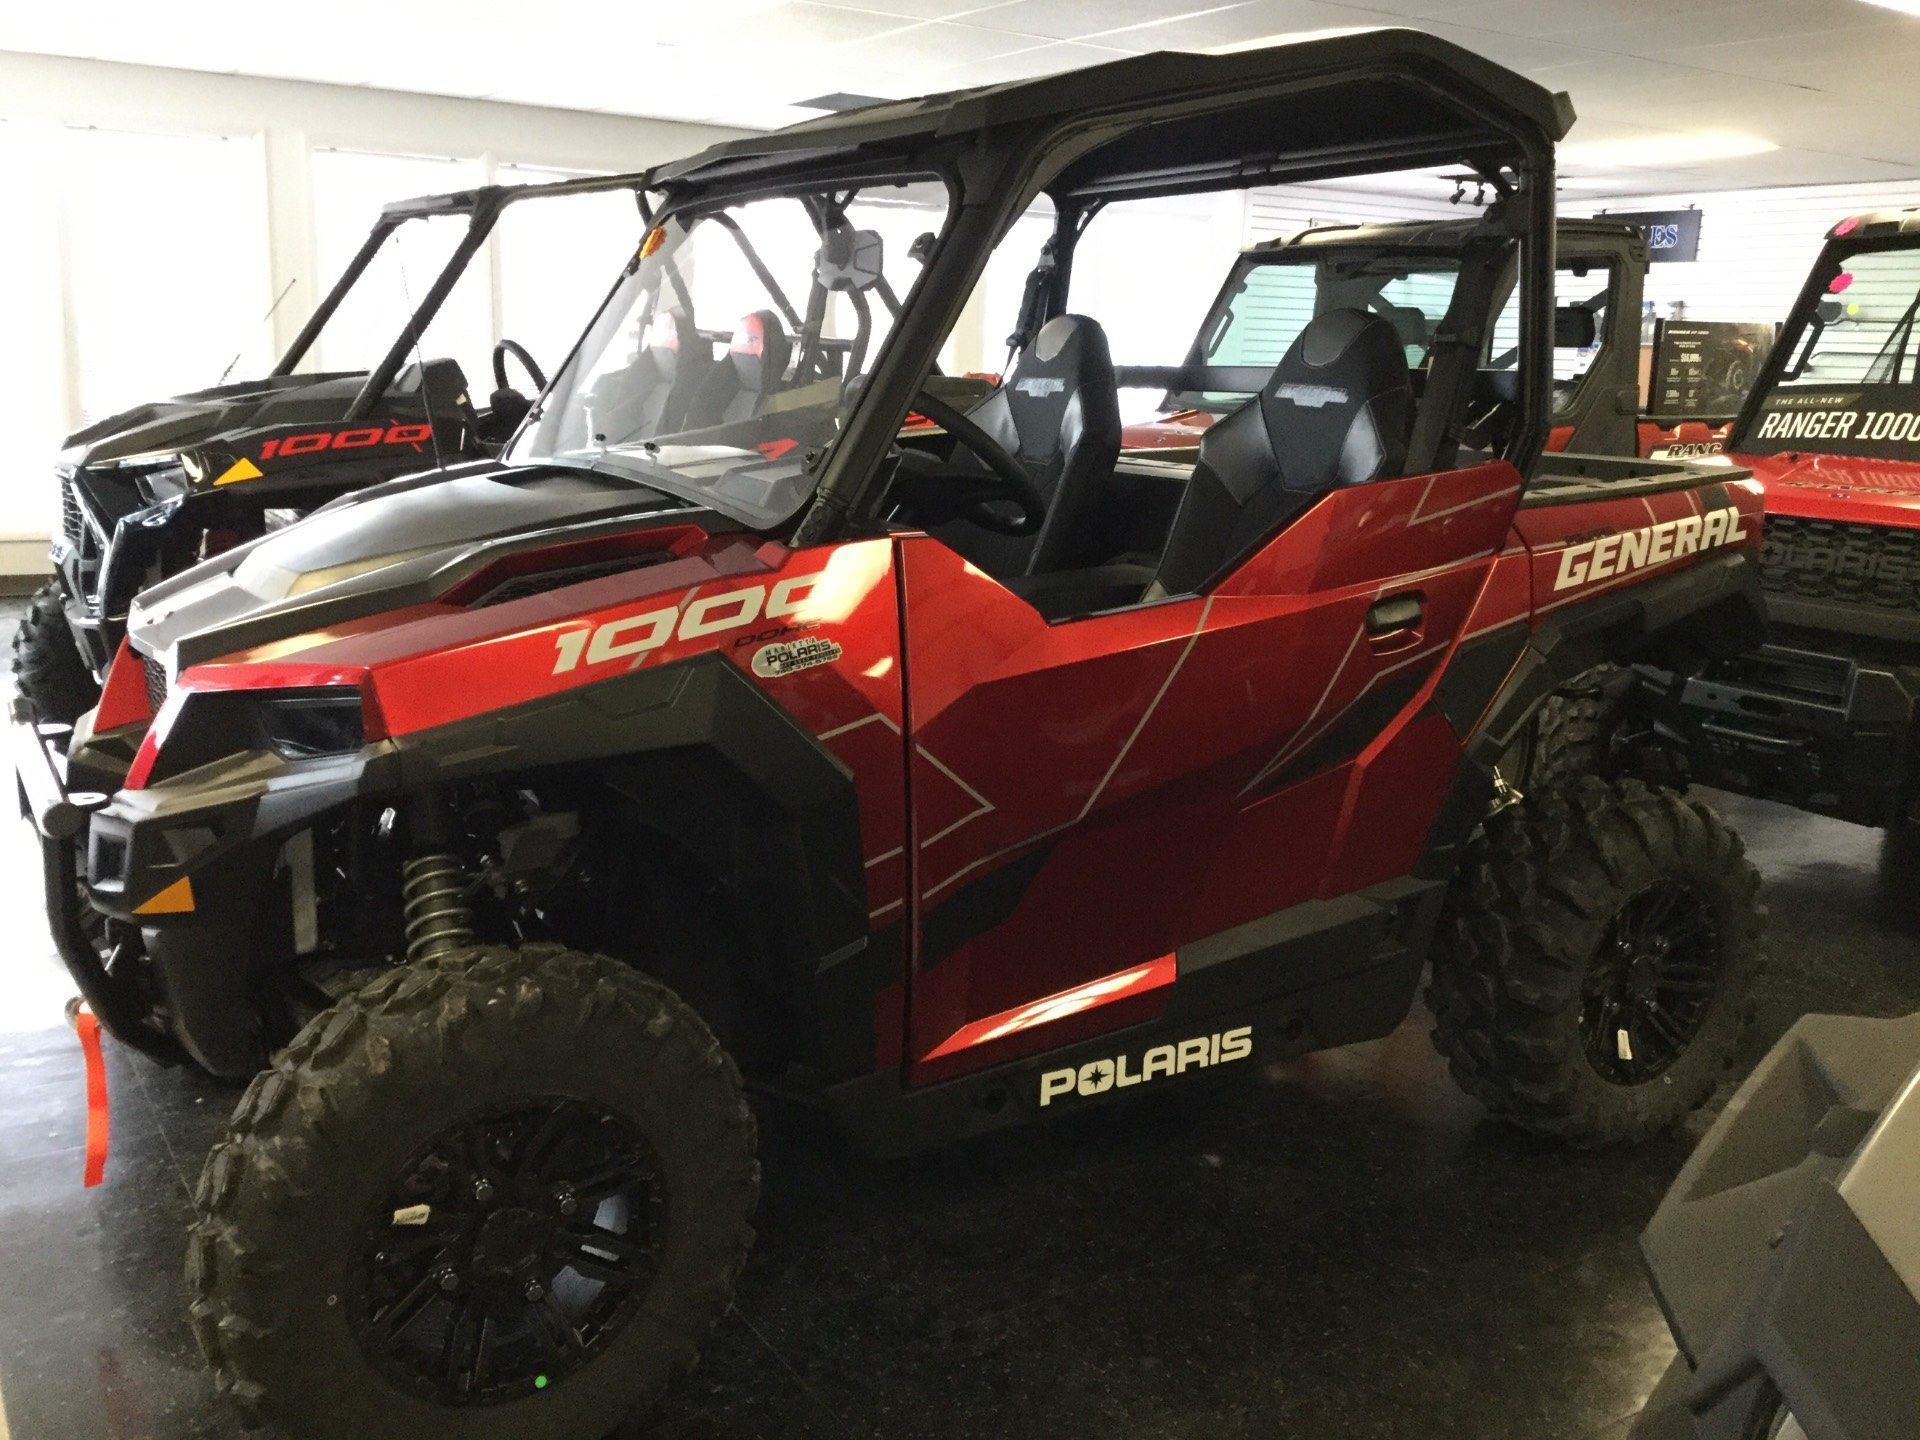 2020 Polaris General 1000 Deluxe in Marietta, Ohio - Photo 1